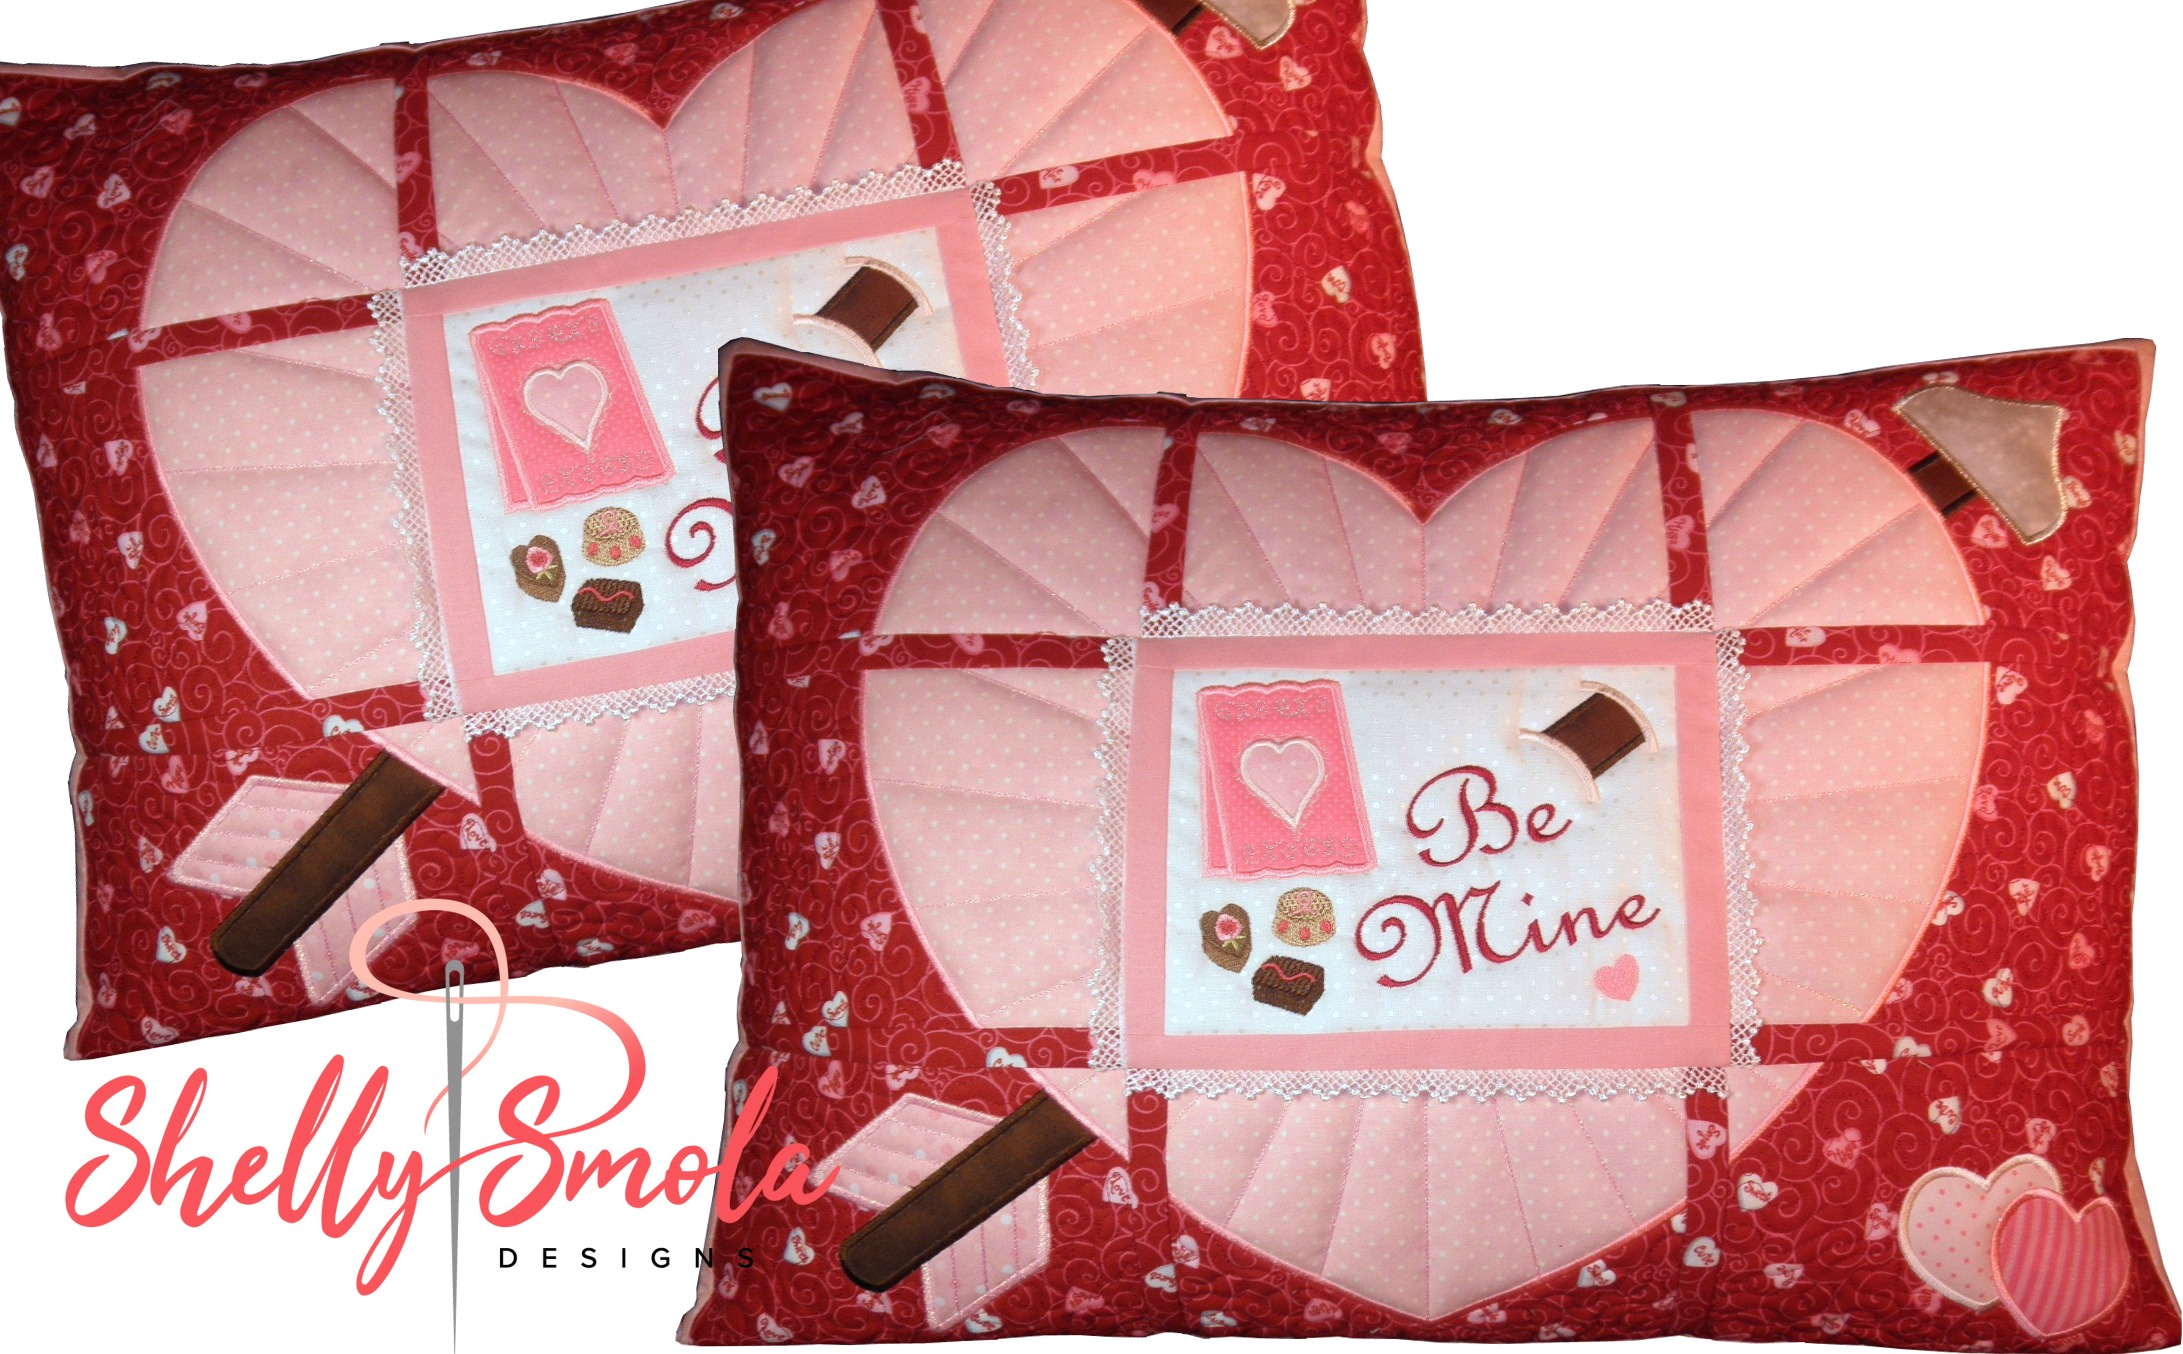 Be Mine Pillows by Shelly Smola